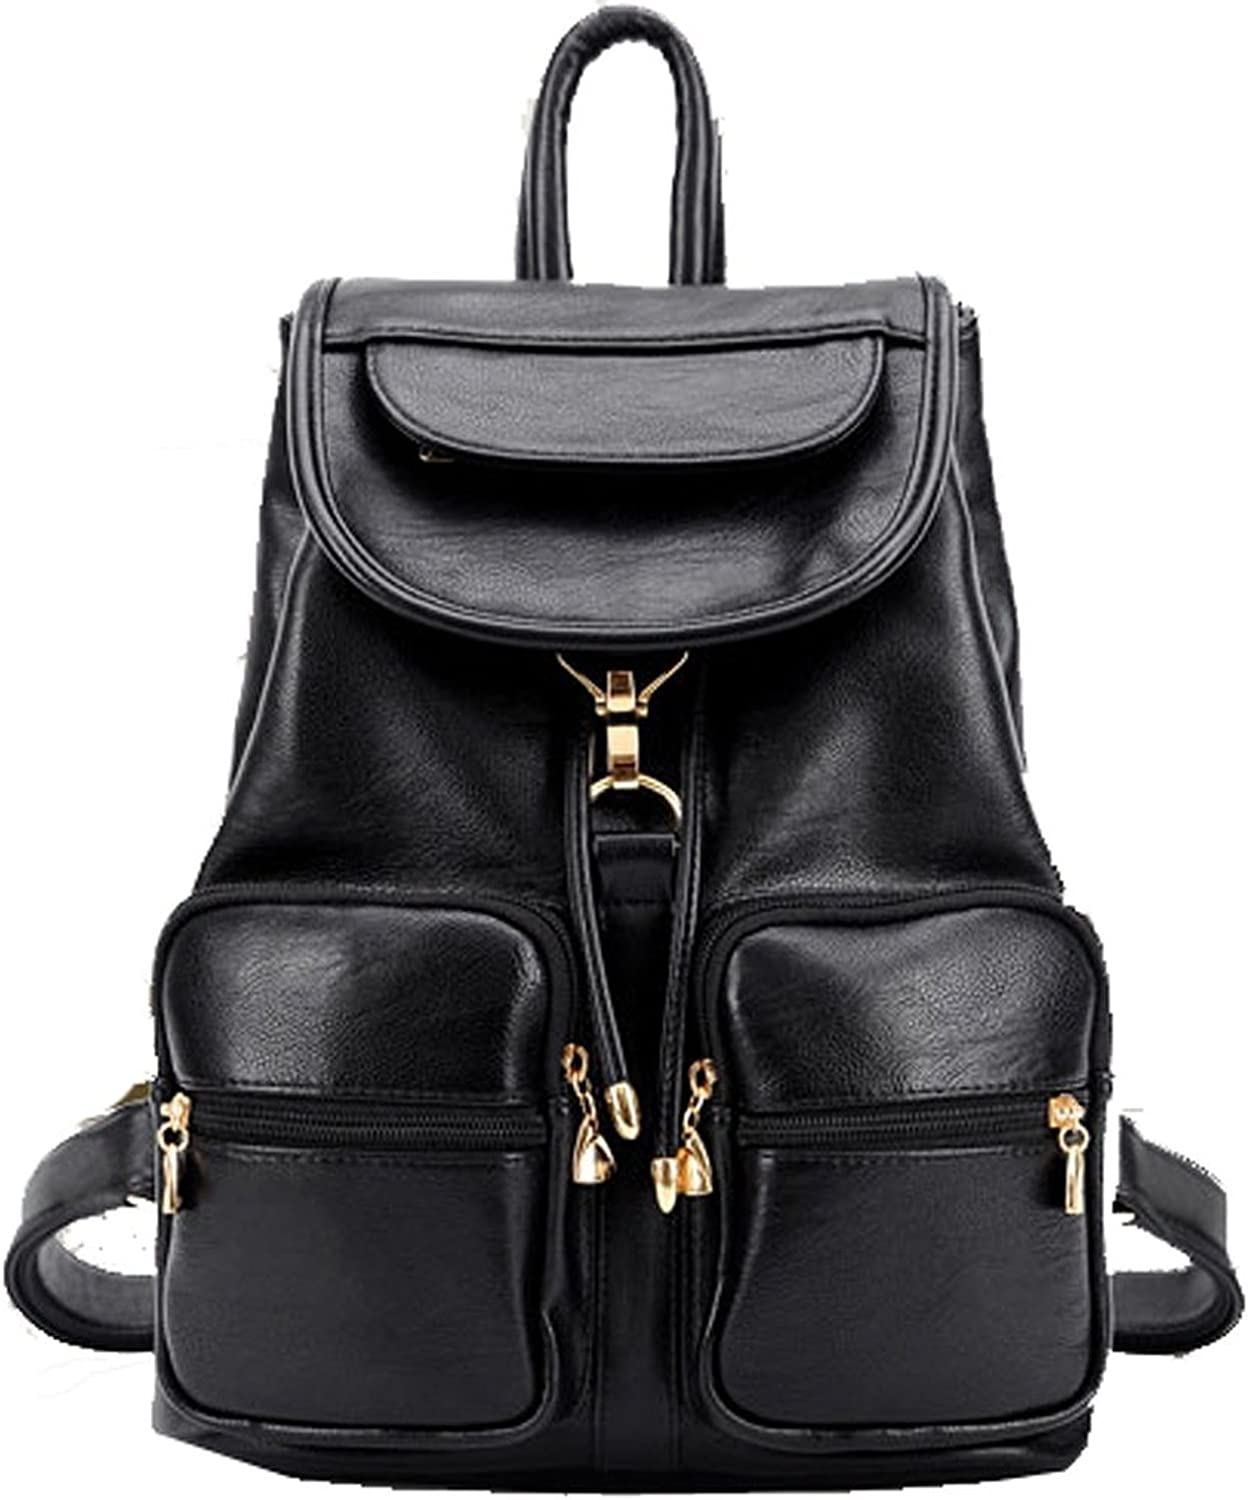 PU Leather Casual Backpack Very Good Taste The Way Of The Girl with many Pockets